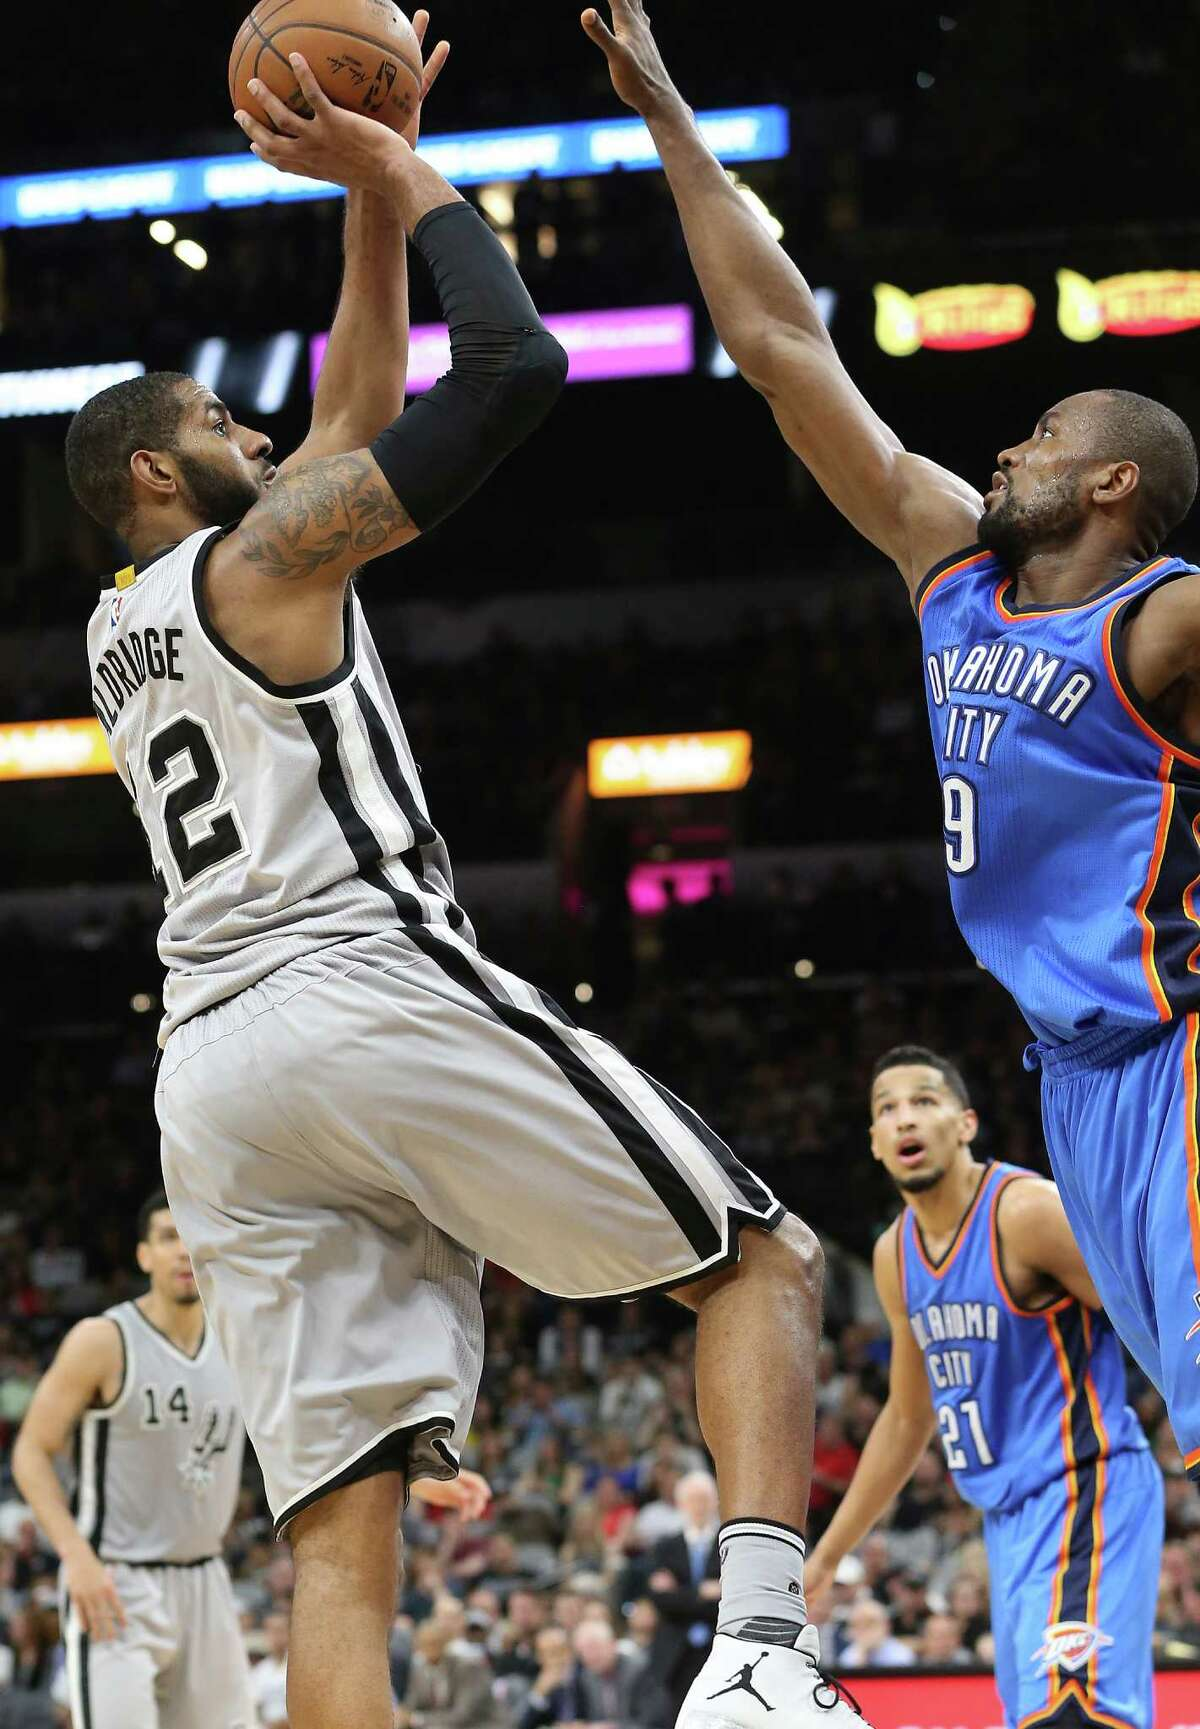 LaMarcus Aldridge shoots over Serge Ibaka as the Spurs host the Thunder at the AT&T Center on March 12, 2016.